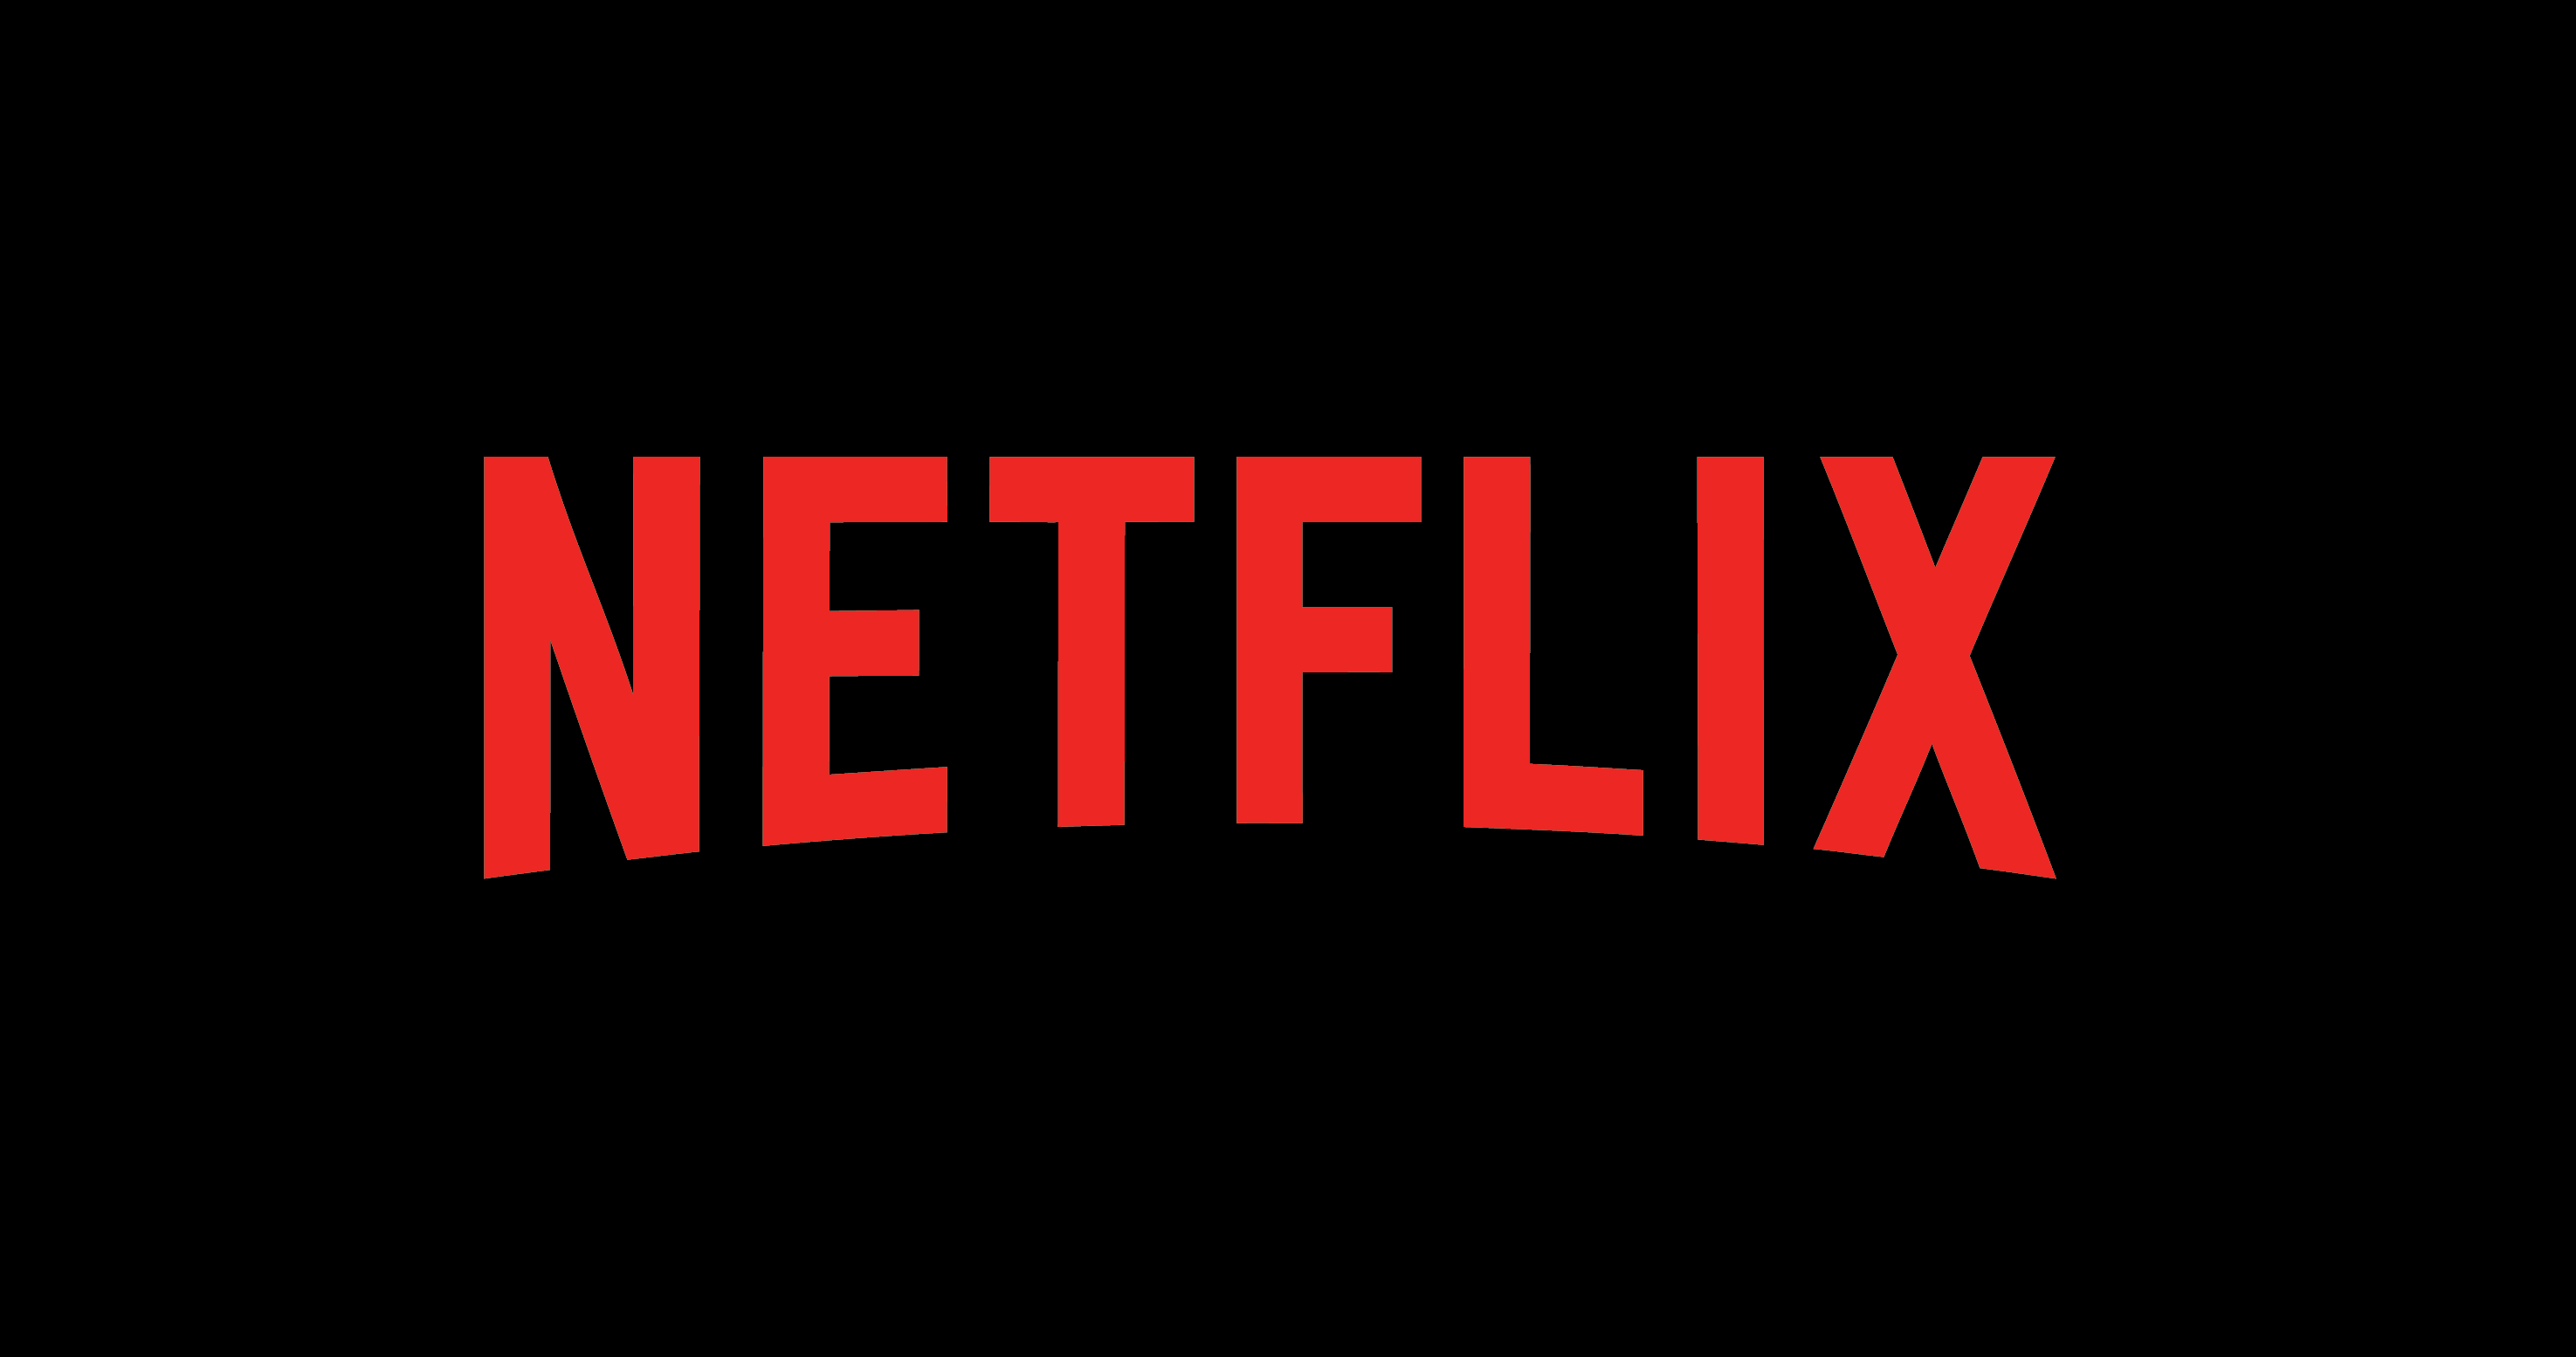 Here Are Some Streaming Services To Entertain You While You Stay Home